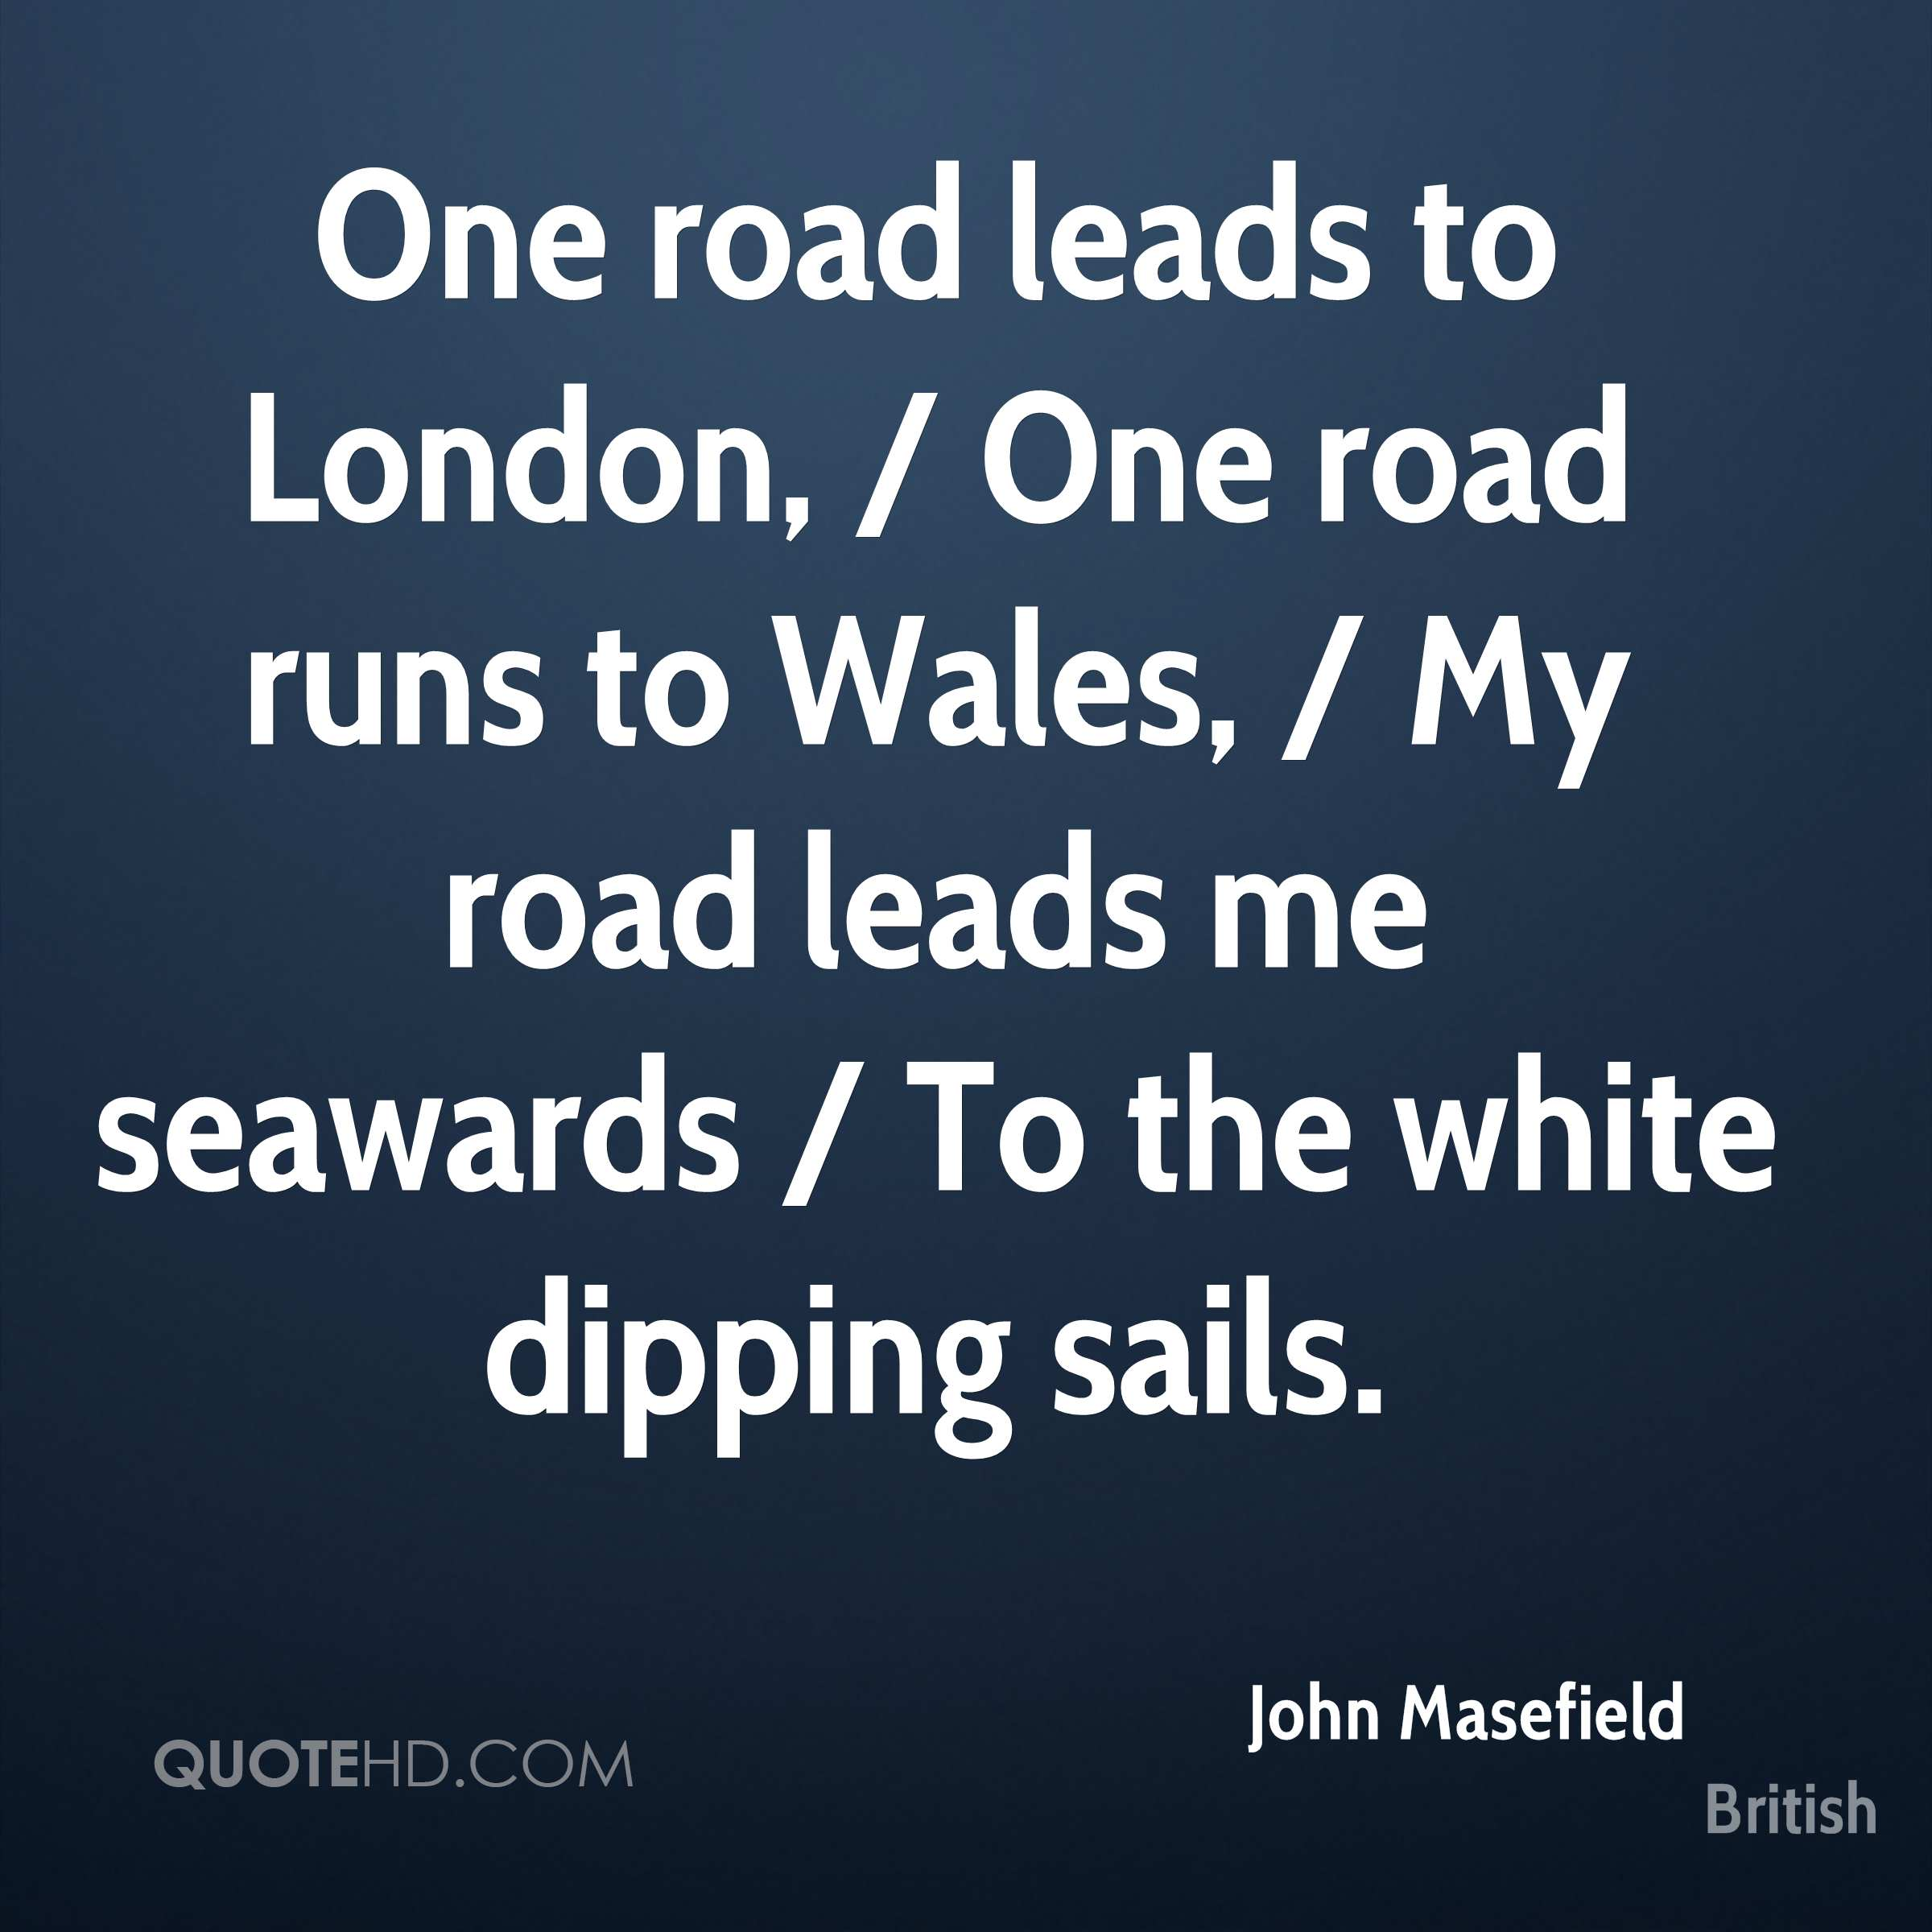 One road leads to London, / One road runs to Wales, / My road leads me seawards / To the white dipping sails.